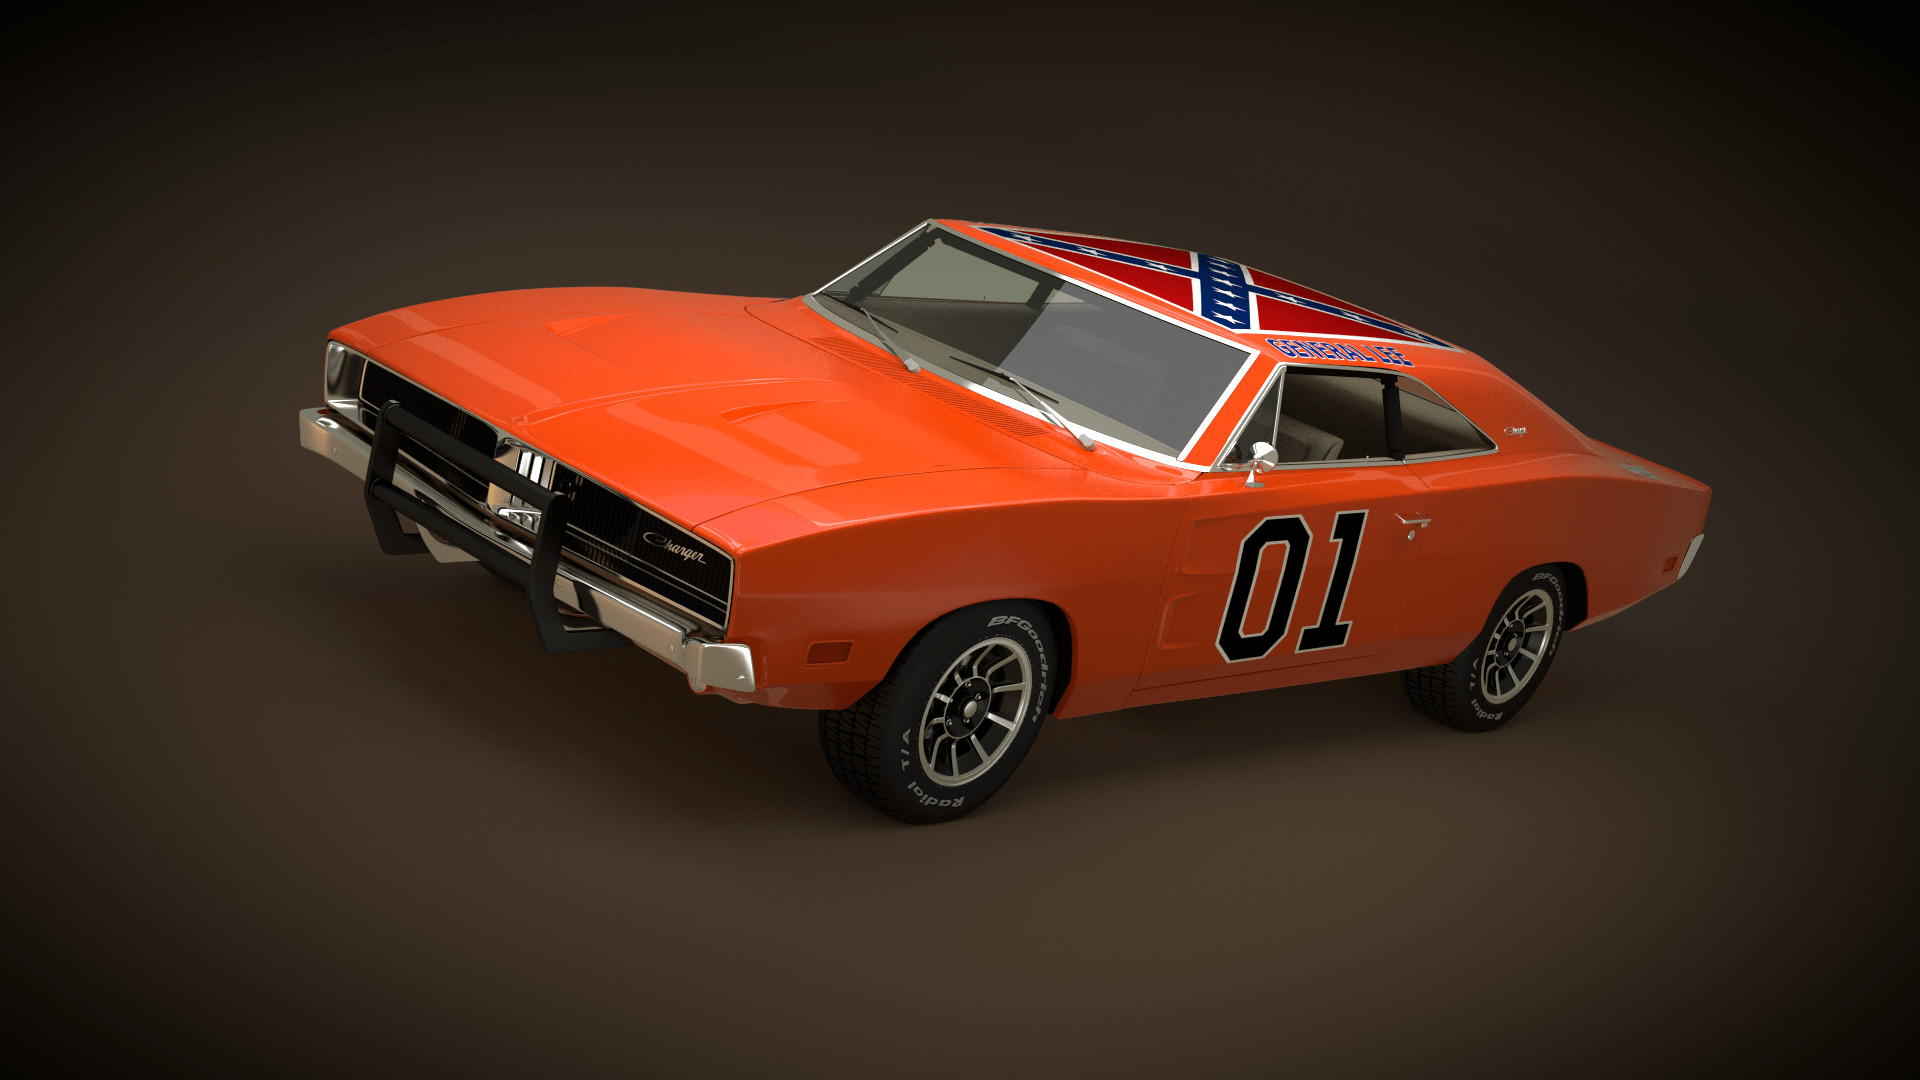 1920x1080 The Dukes Of Hazzard 1969 Dodge Charger By Neubi3d On General Lee Wallpaper